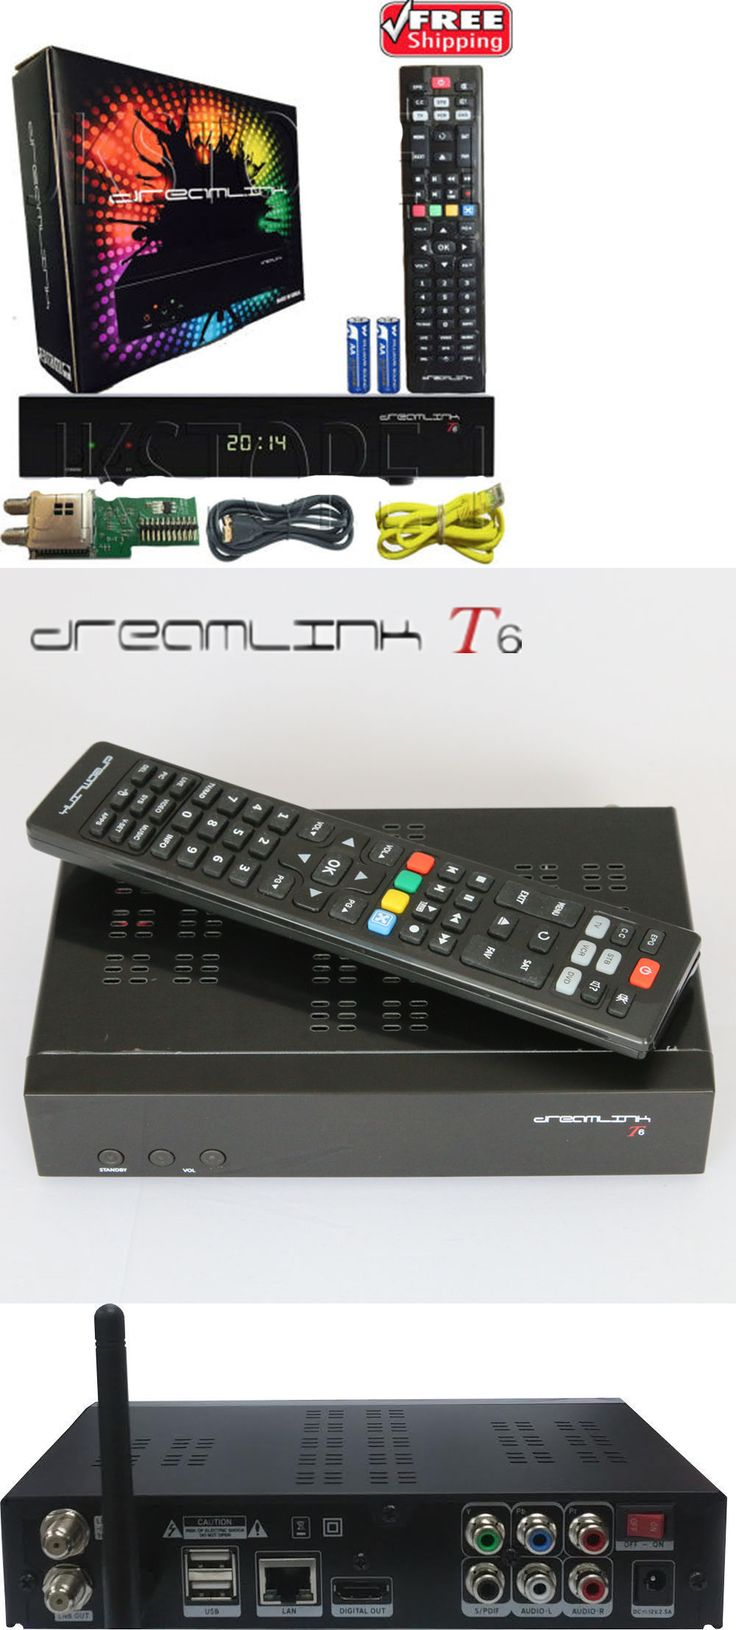 Satellite TV Receivers: New Dreamlink Original T6 Hd Satellite Receiver + Iptv Kodi W Dl-300 + Hdmi -> BUY IT NOW ONLY: $170 on eBay!